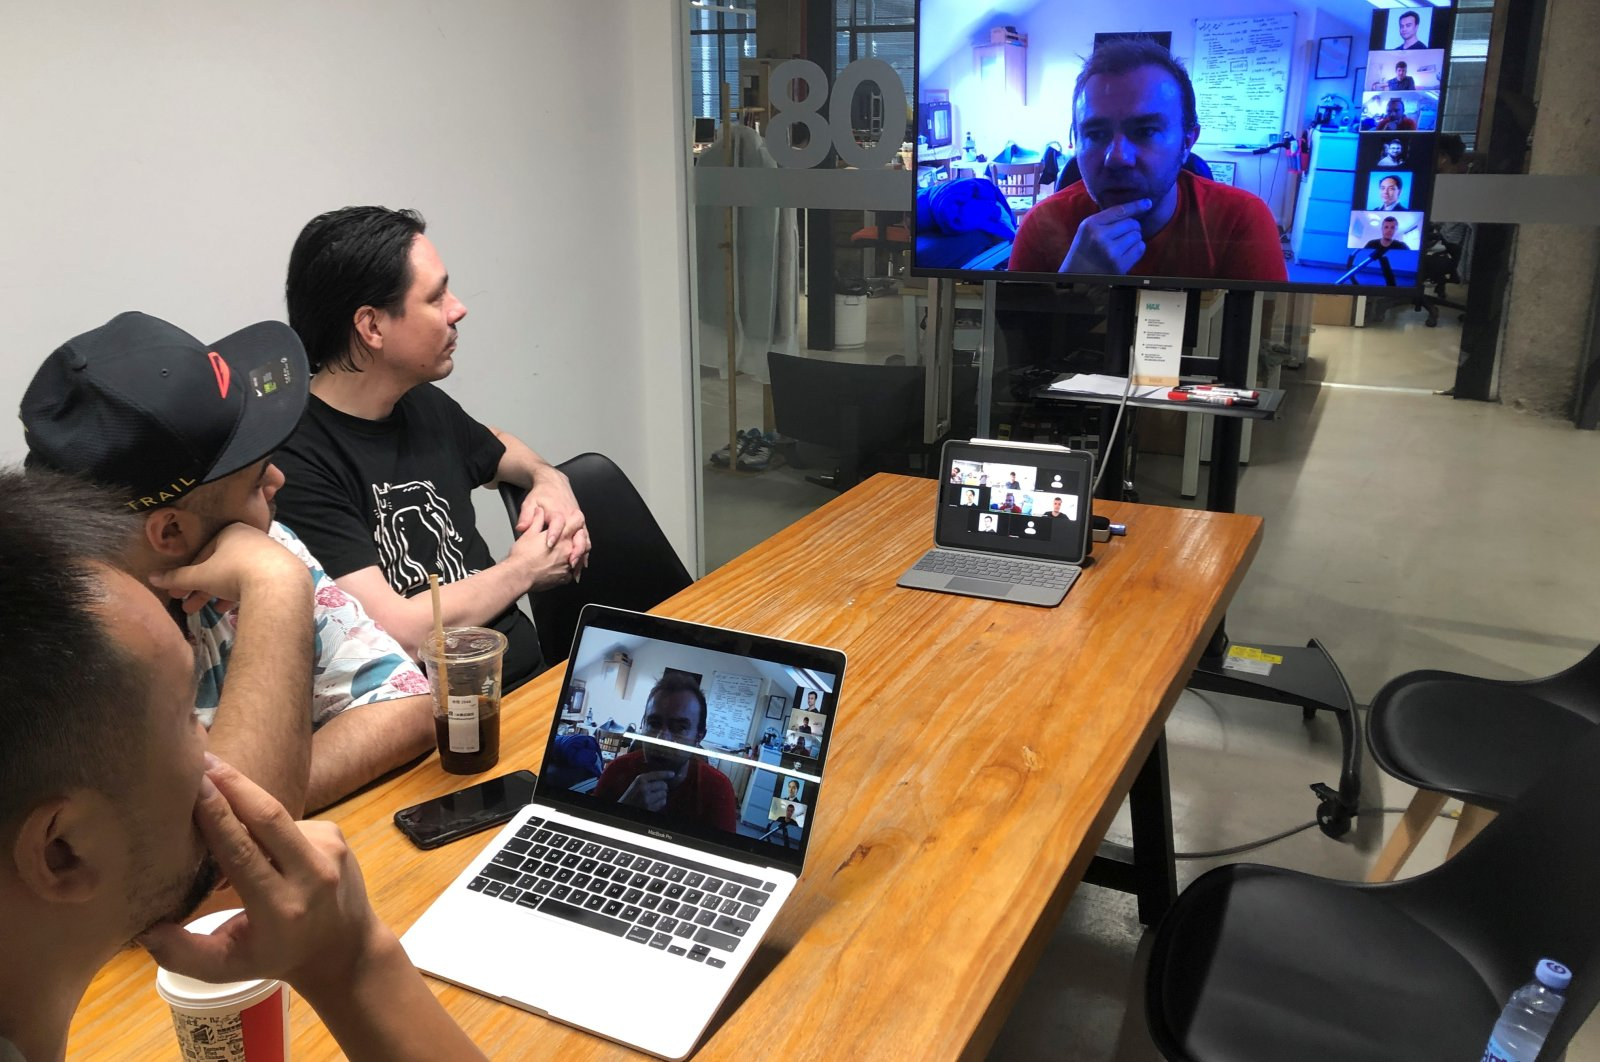 Hax's engineers discuss a prototype with the team from Unicorn Bio over a video call amid the global coronavirus pandemic, from their office at Huaqiangbei electronics market in Shenzhen, Guangdong province, China, July 16, 2021. (Reuters Photo)